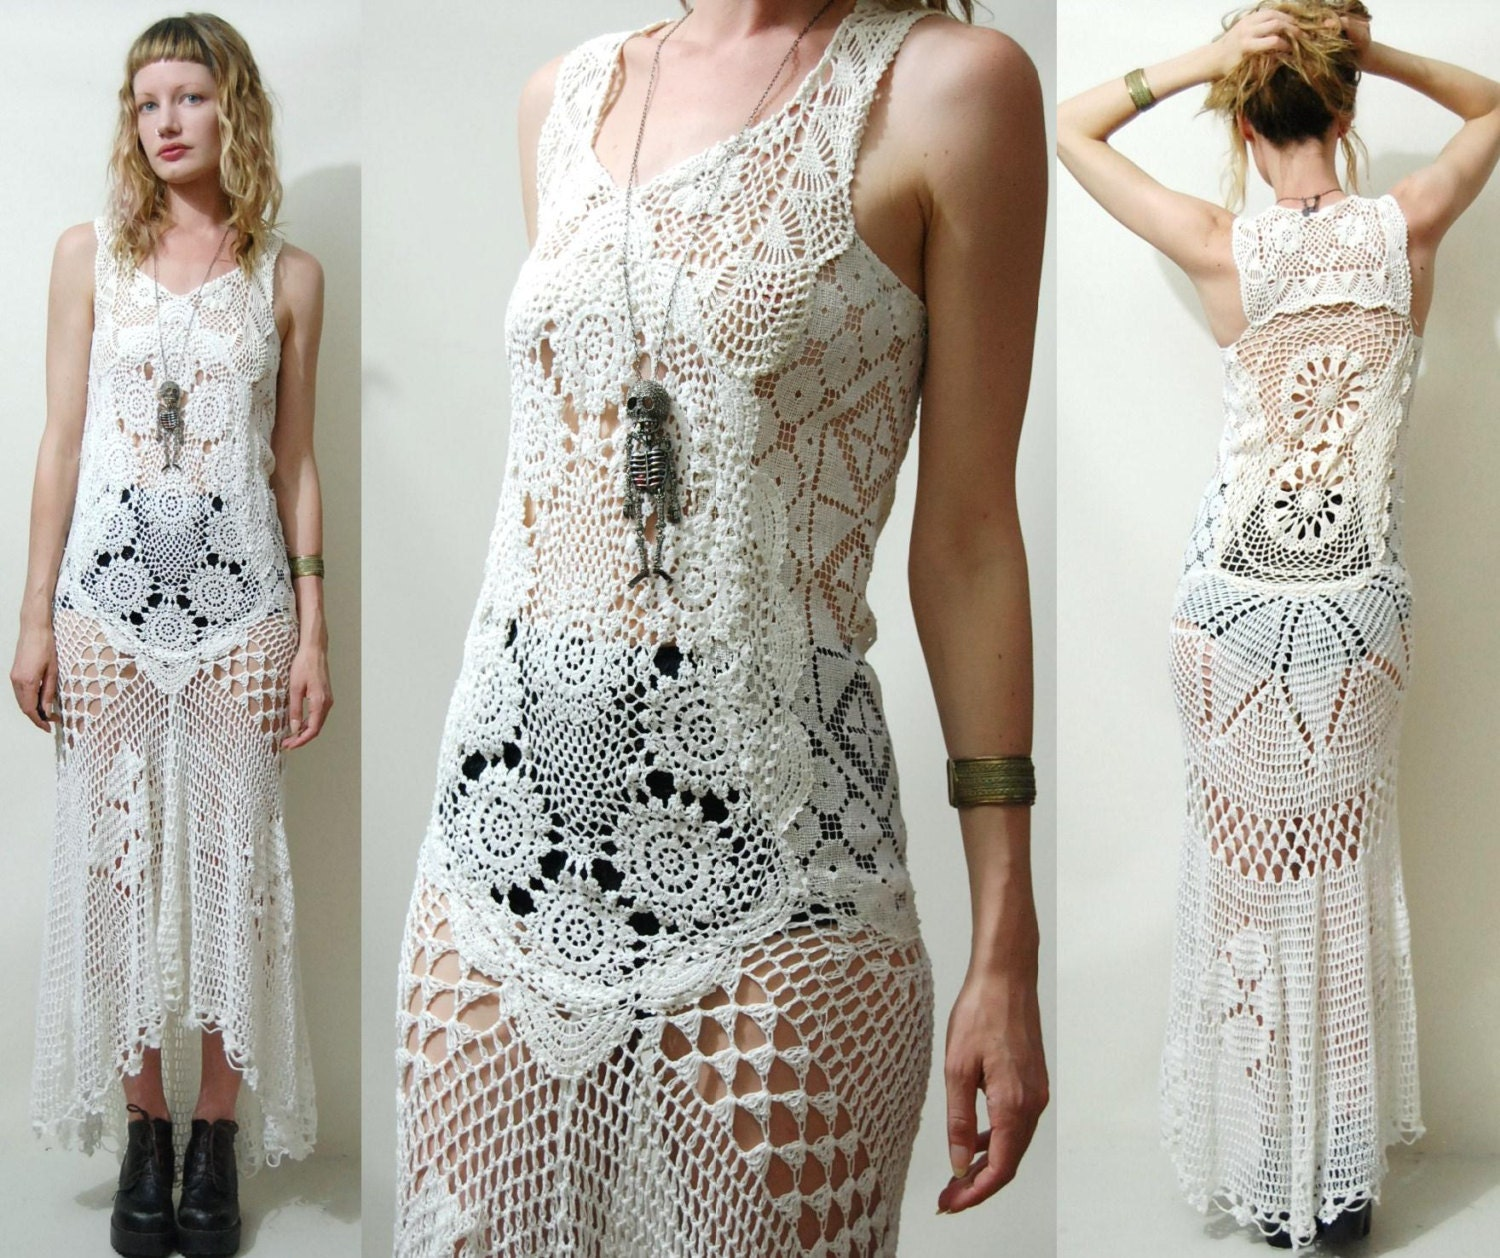 Crochet Dress VINTAGE Full LACE White by cruxandcrow on Etsy